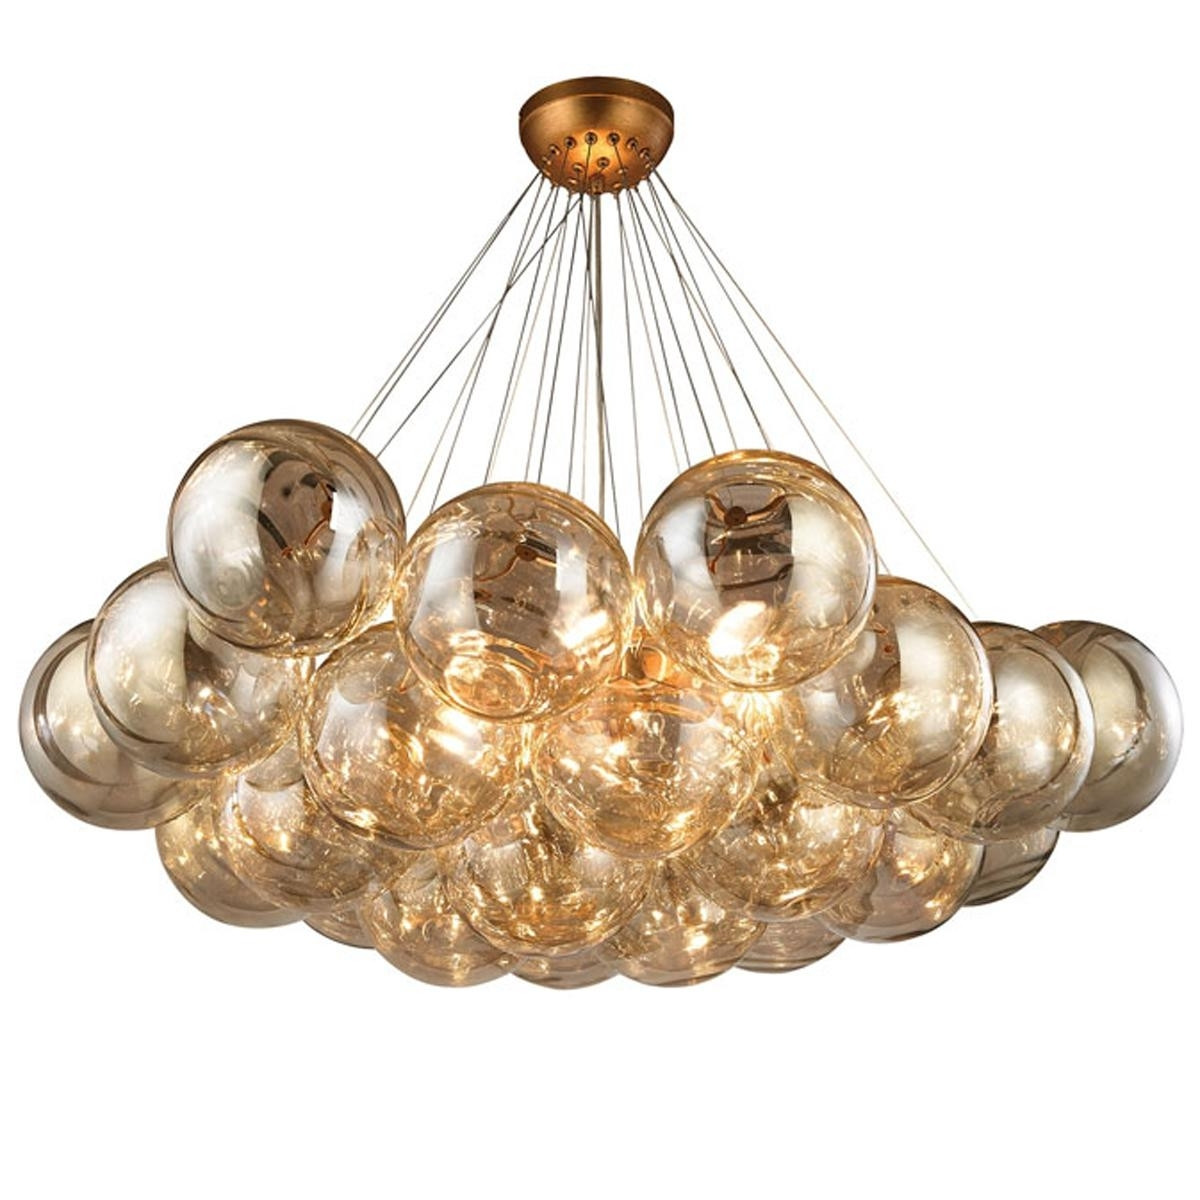 Widely Used Large Globe Chandelier Within Large Foyer Multi Globe Chandelier – Trgn #4144F7Bf (View 15 of 15)